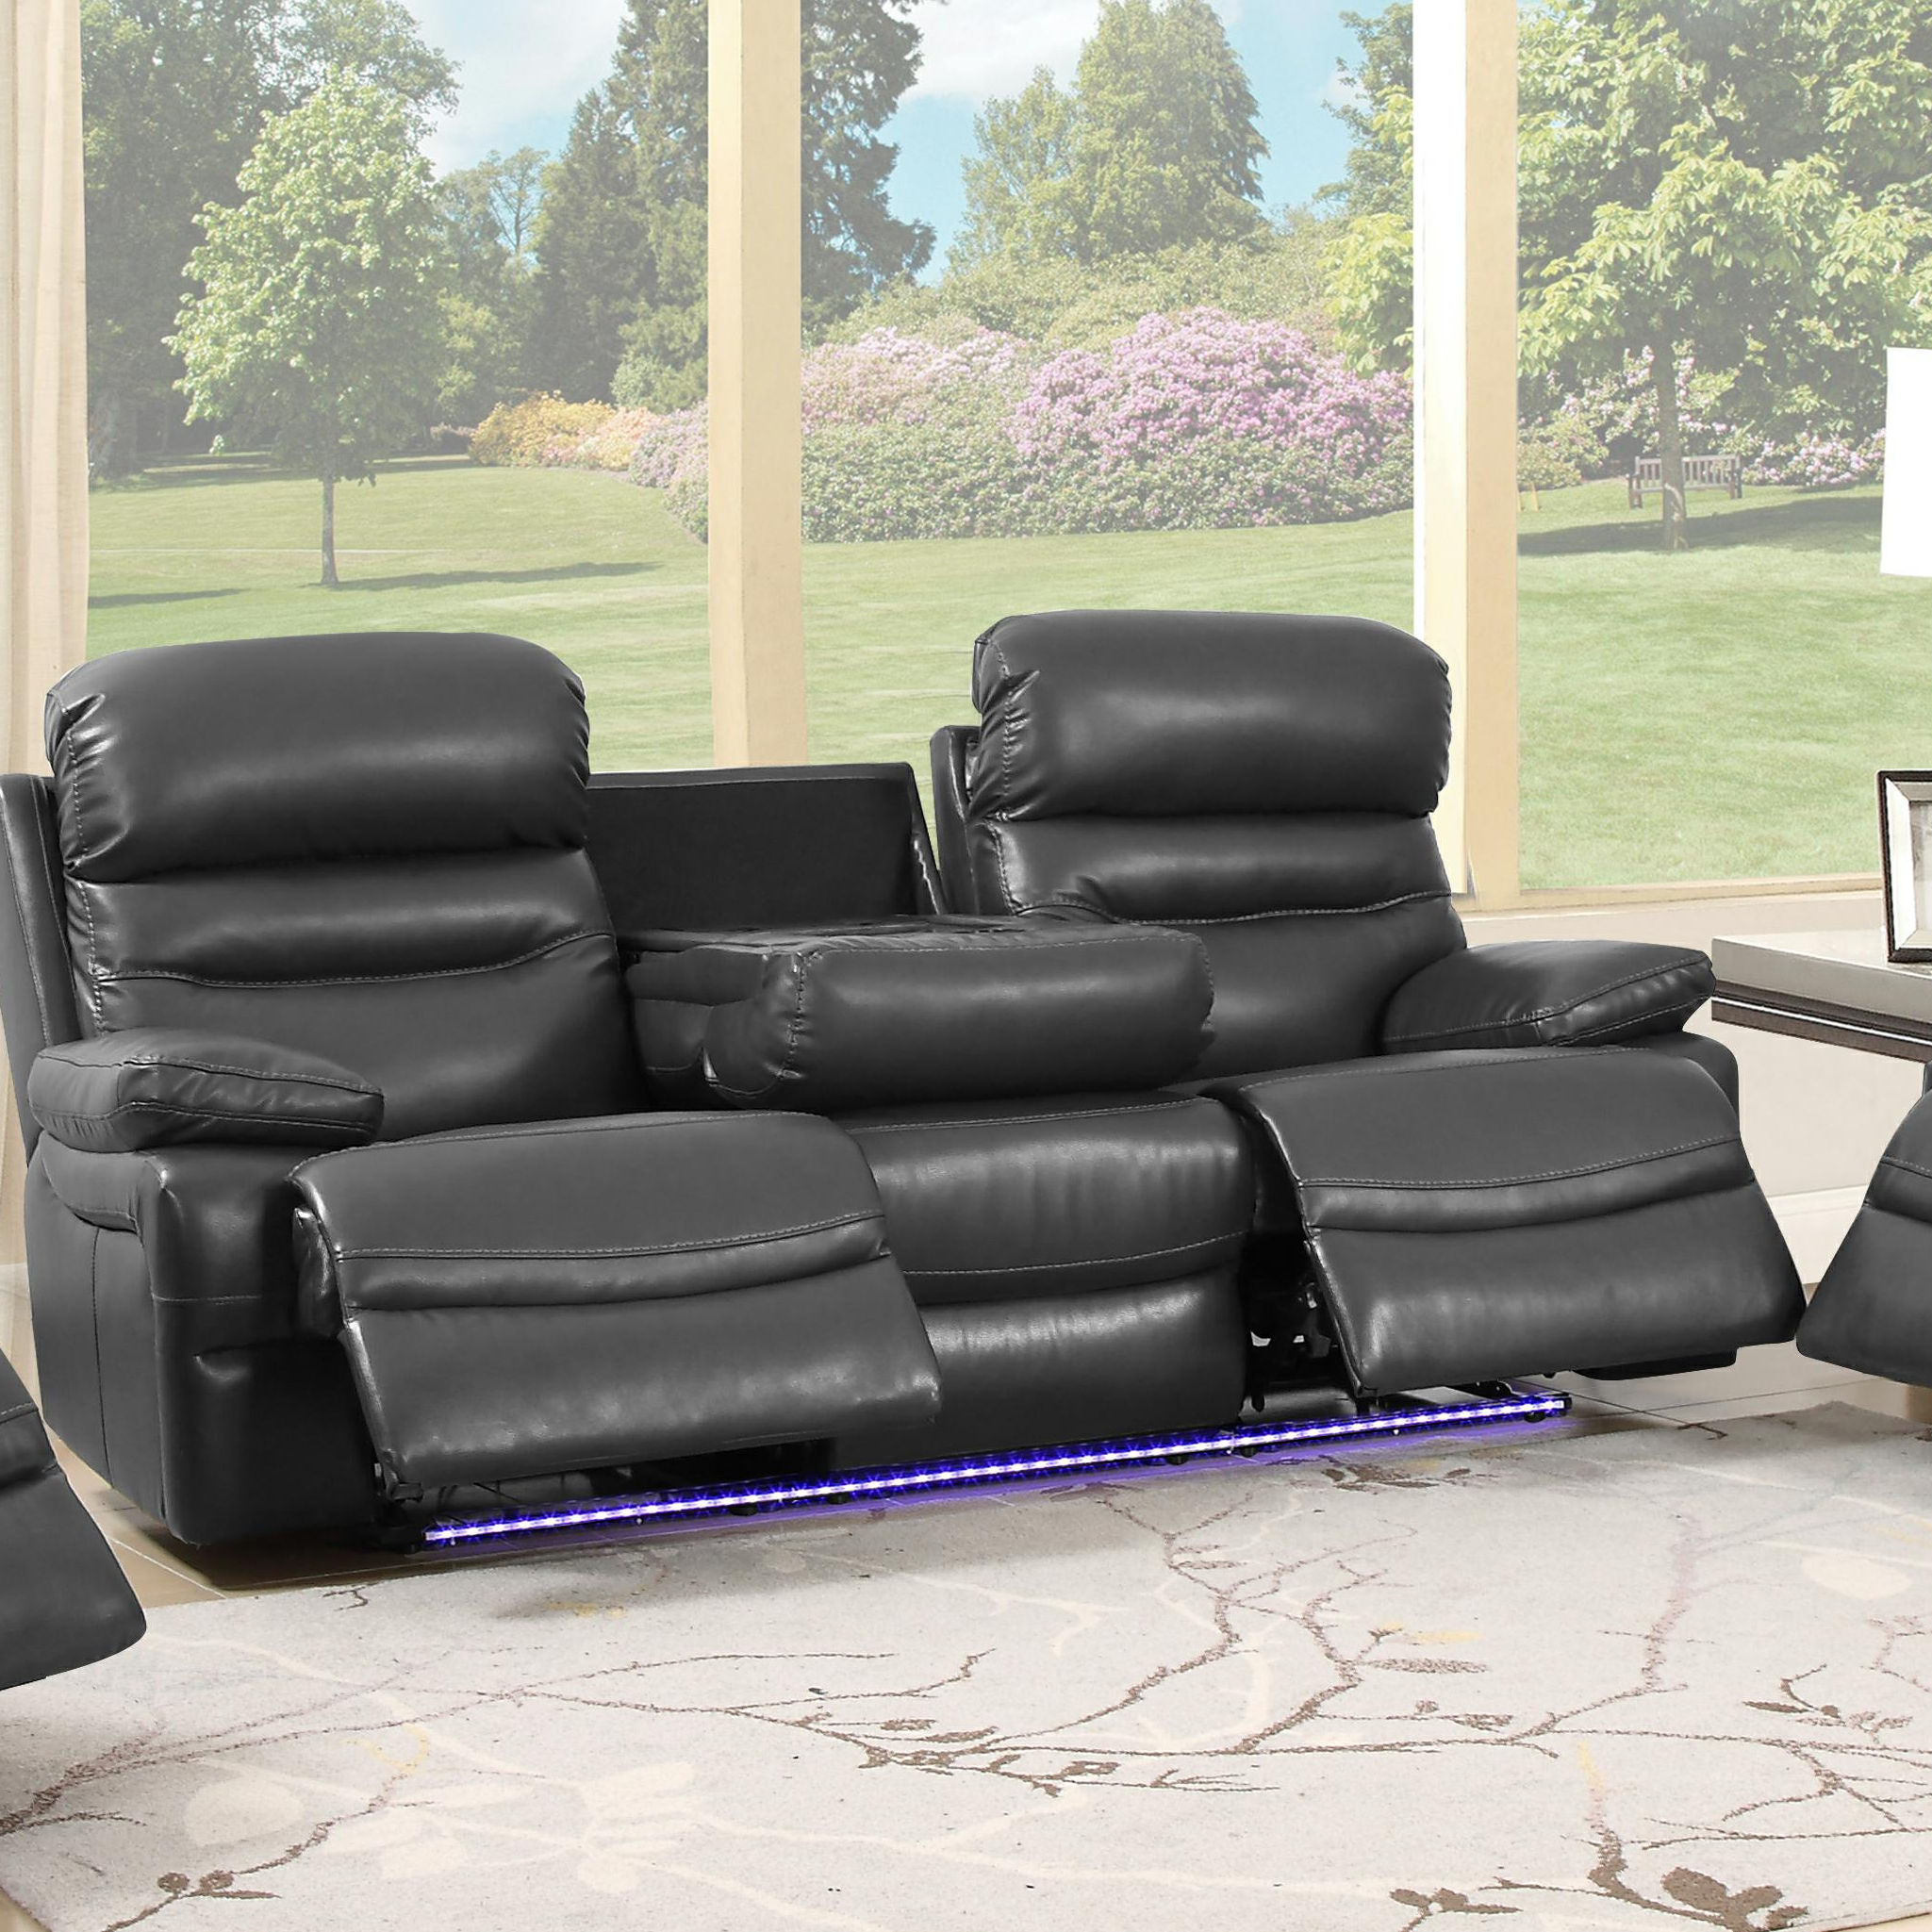 9442 recliner sofa with I-table wireless recharge,bluetooth speaker, USB